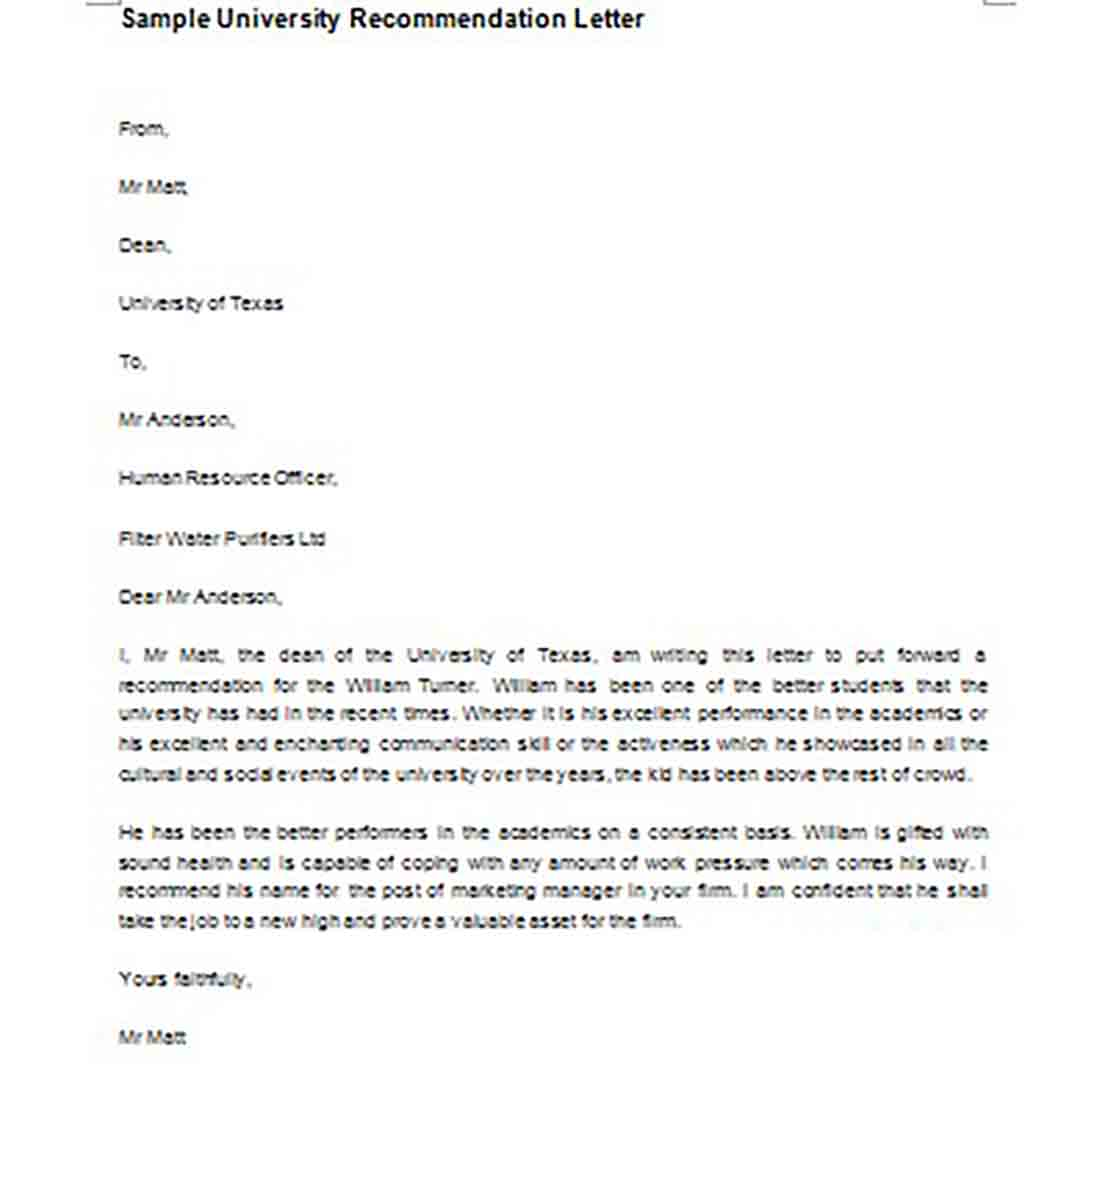 University Recommendation Letter templates